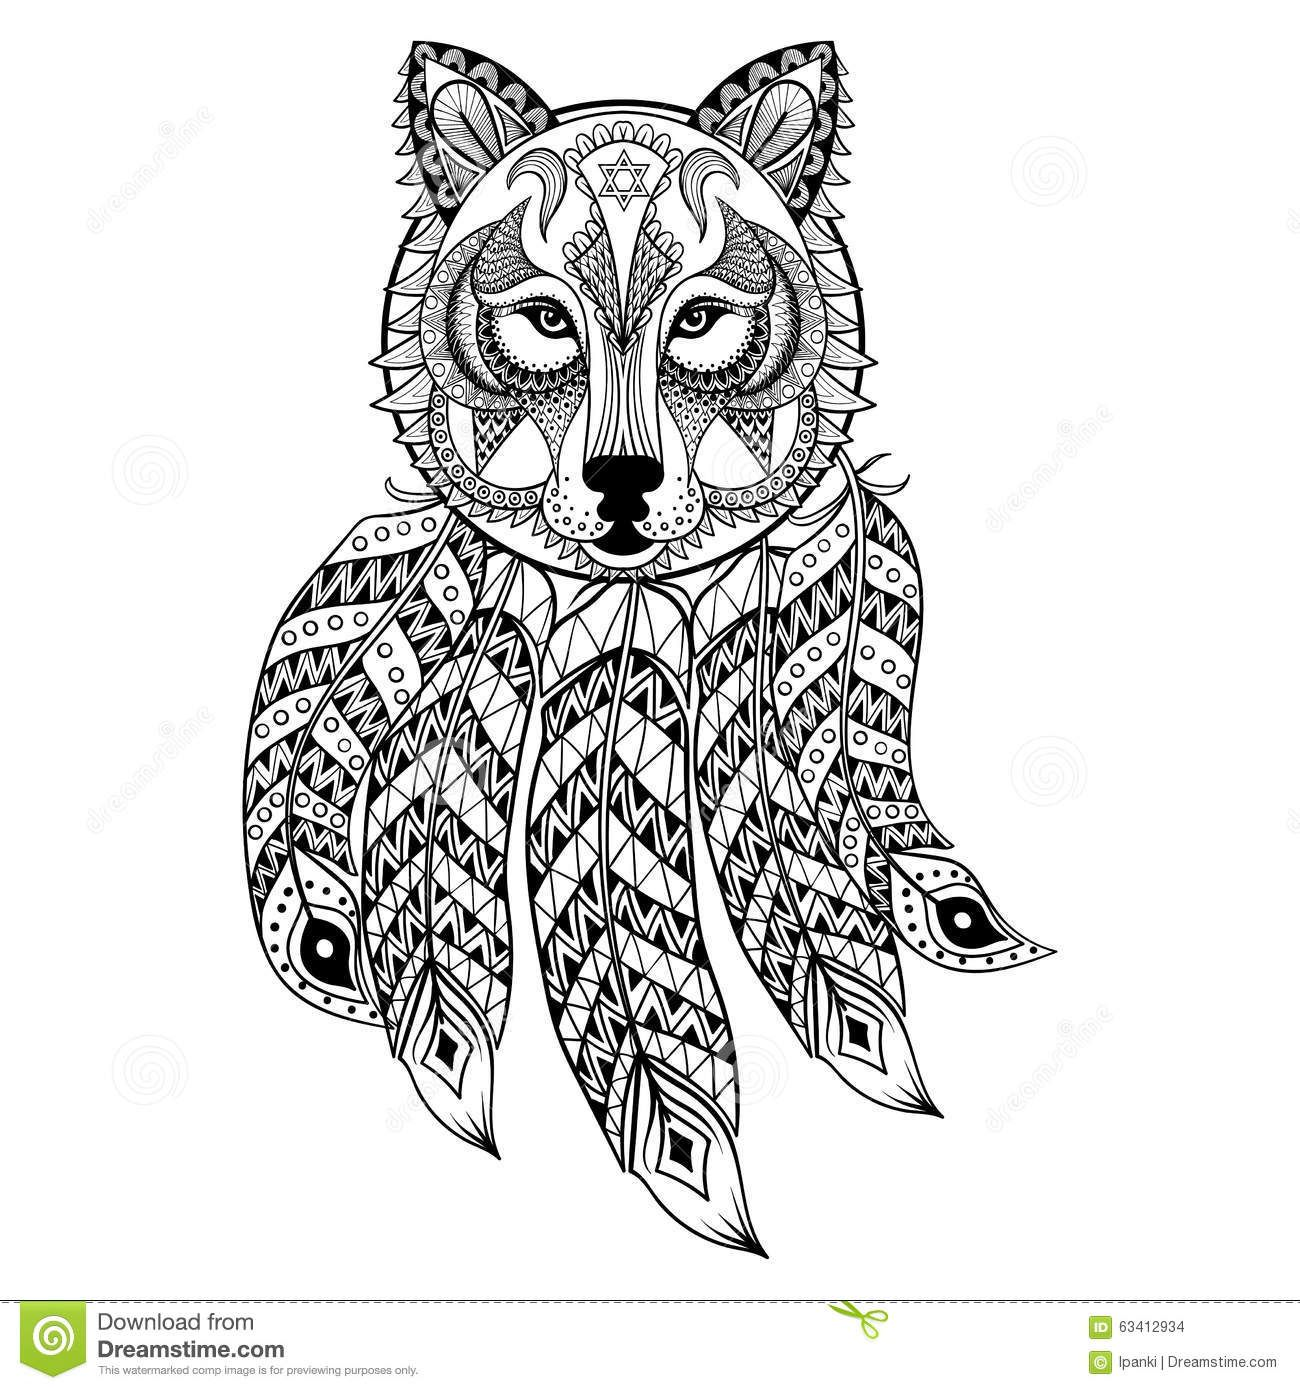 dream catcher coloring pages to download and print for free - Wolf Coloring Pages For Adults